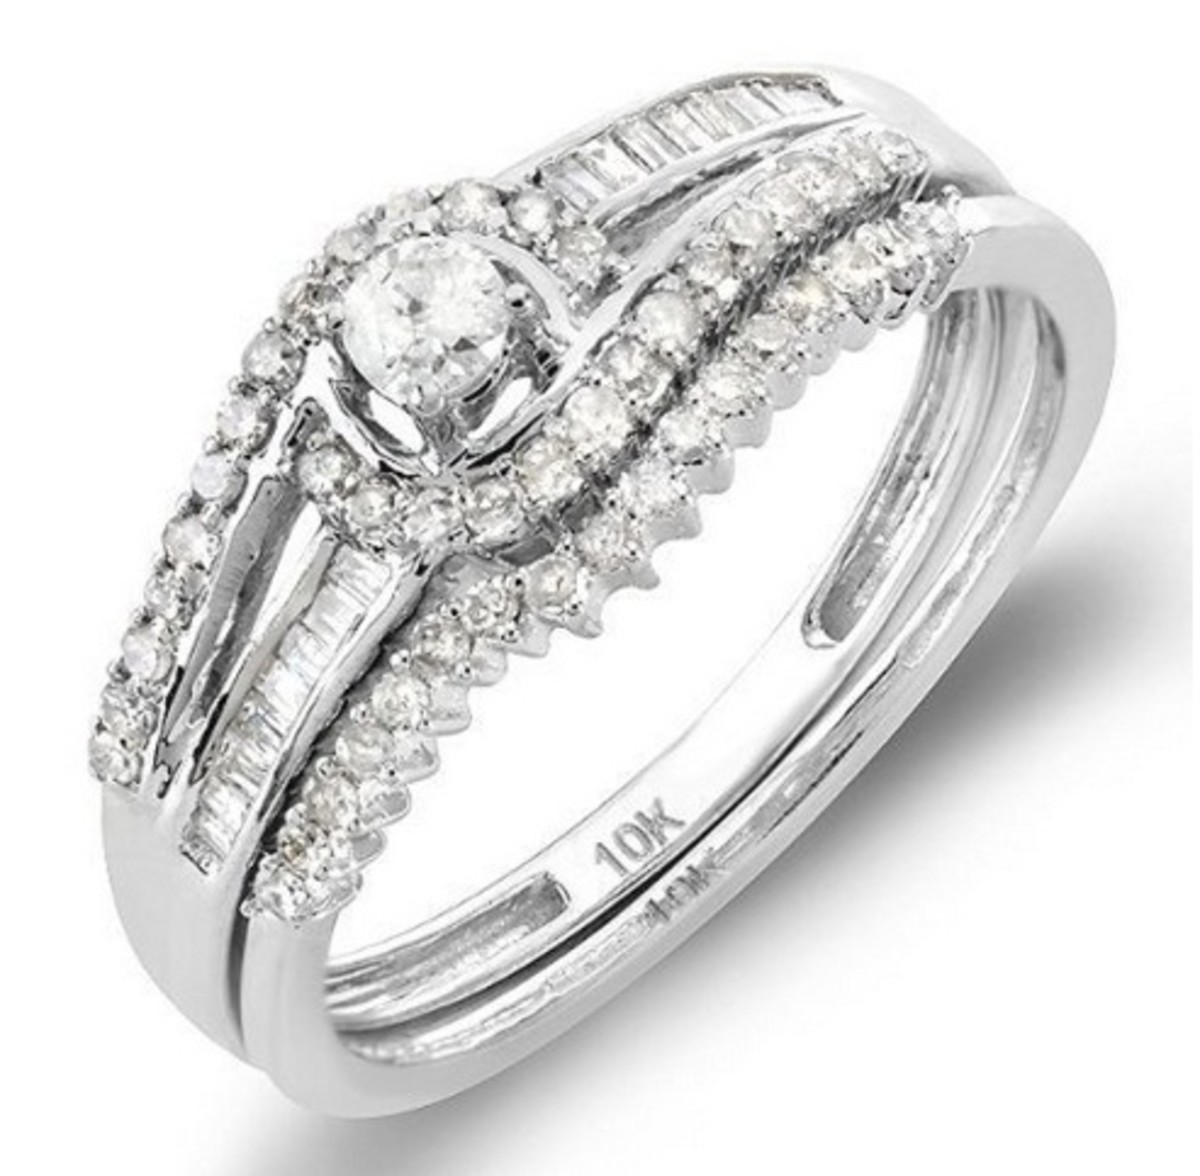 10k White Gold Round & Baguette Diamond Halo Bridal Ring Set